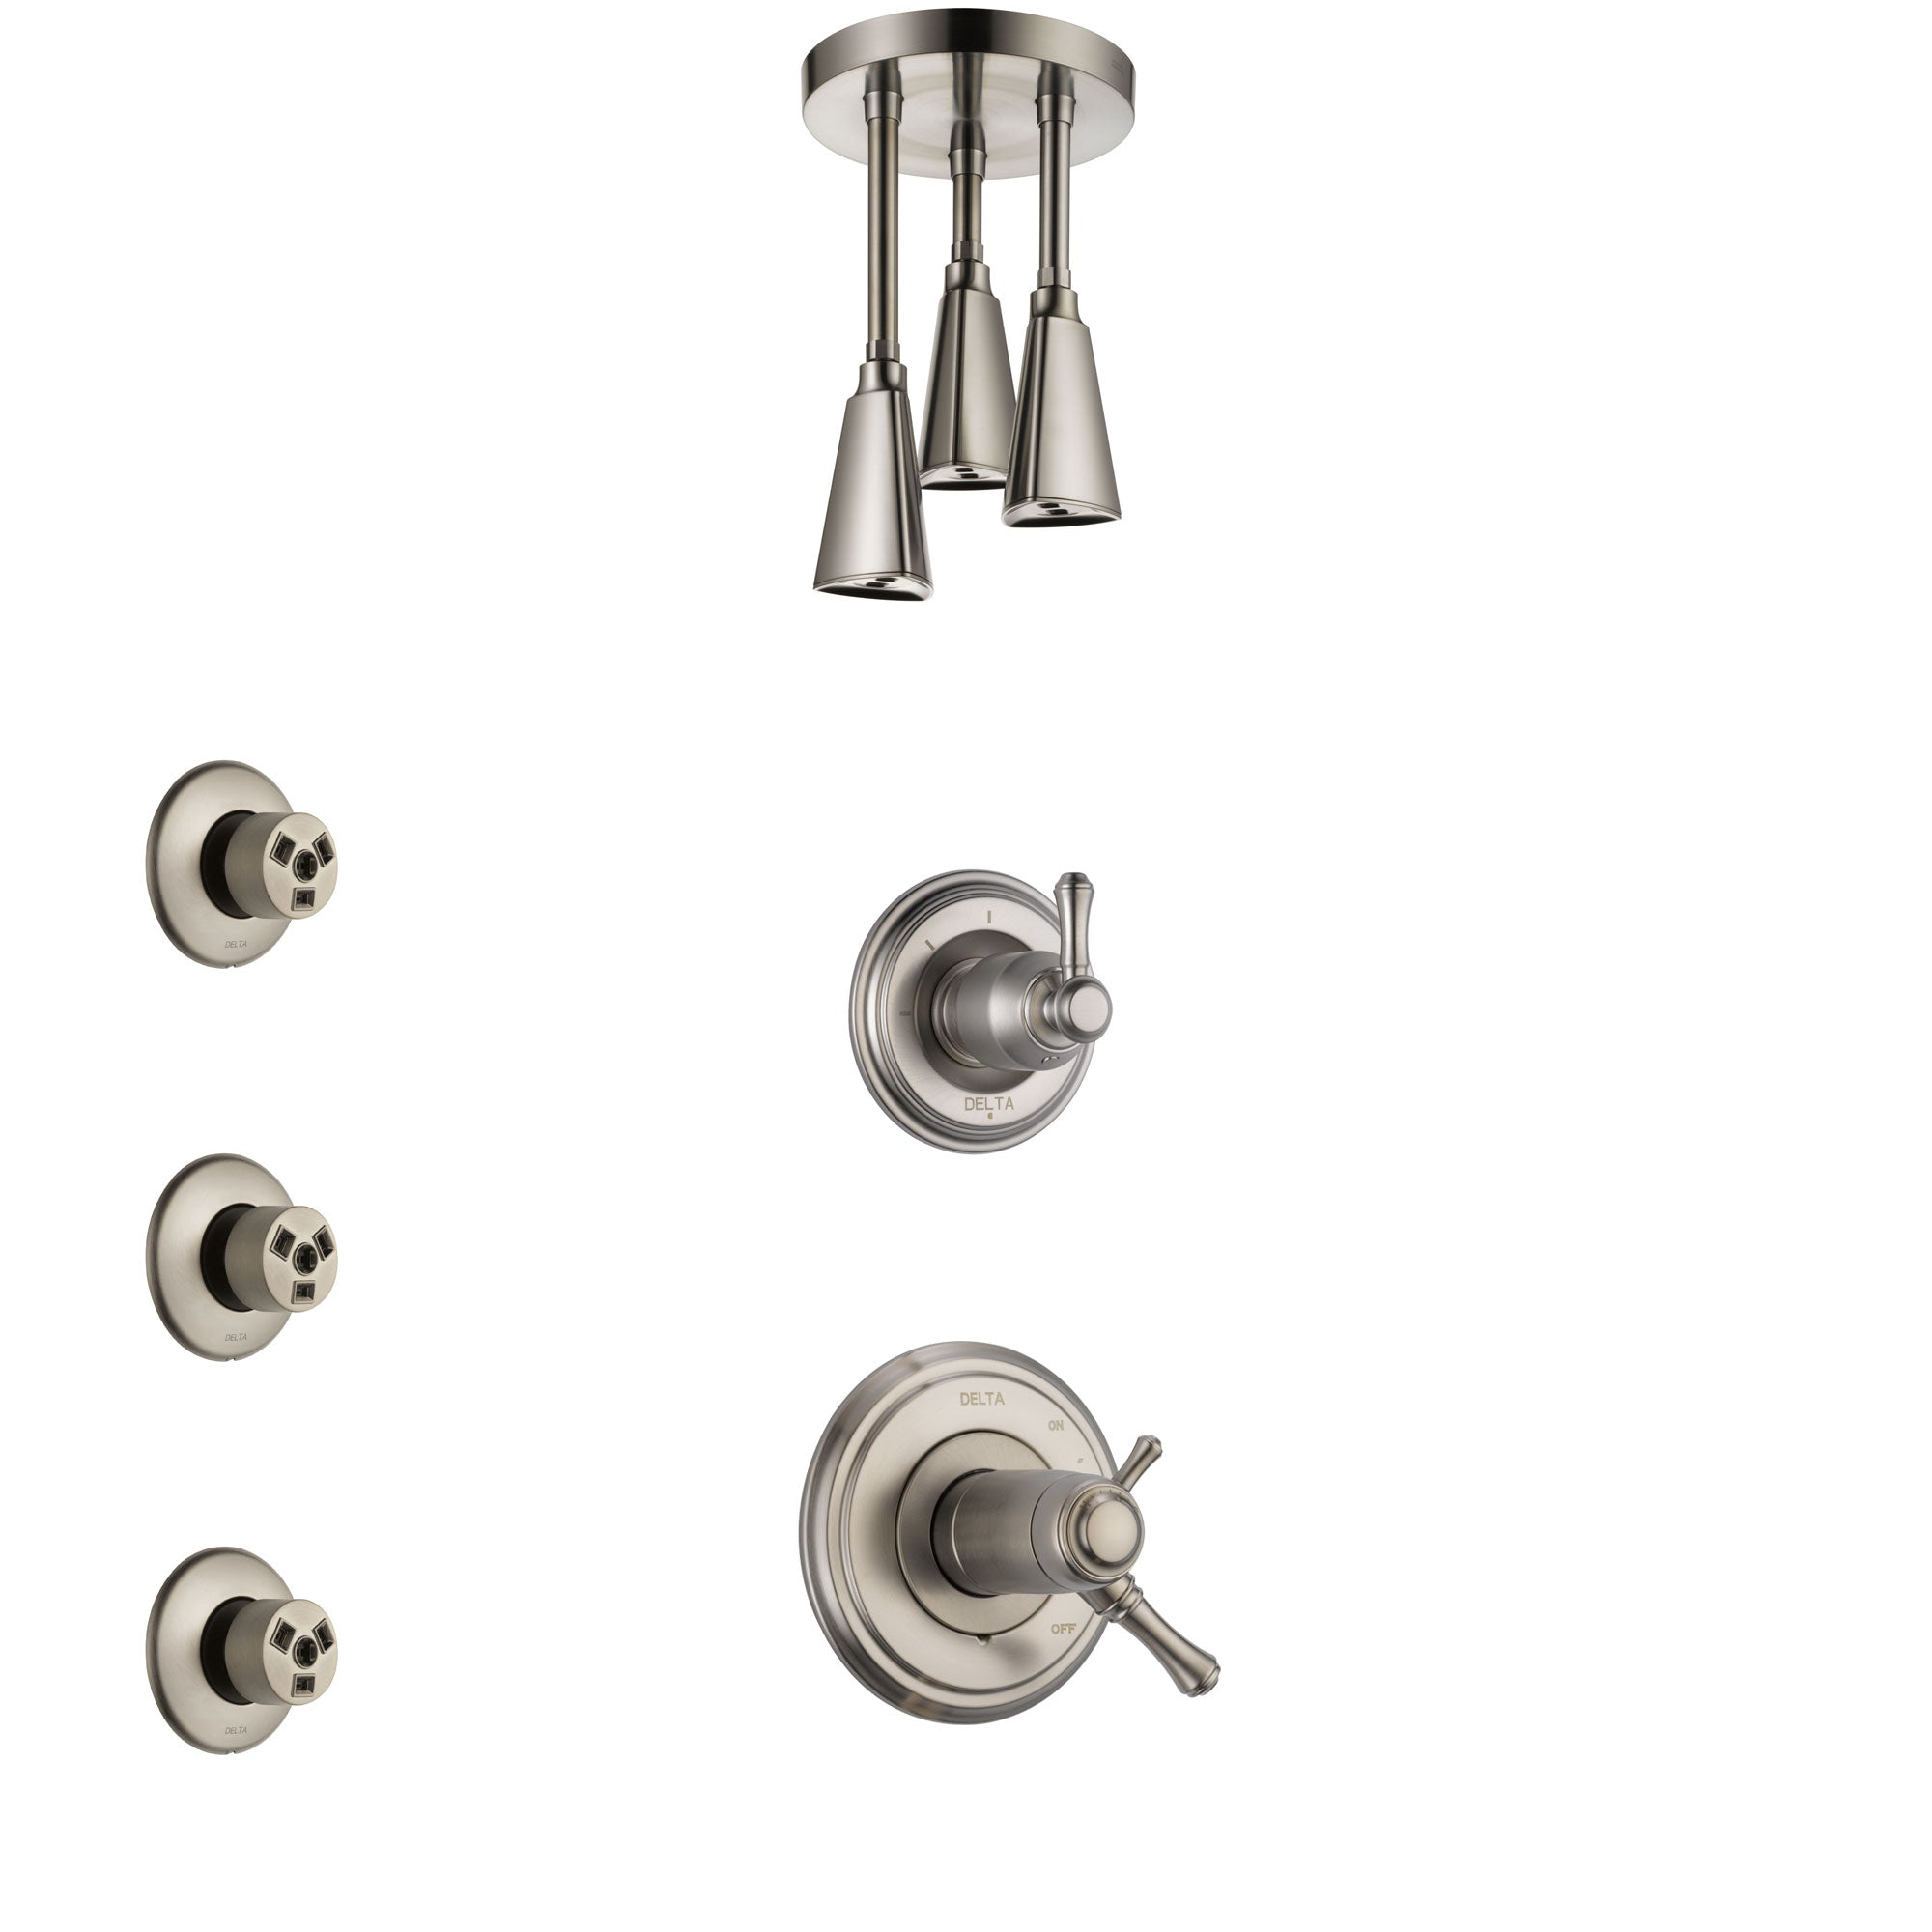 Delta Cassidy Dual Thermostatic Control Handle Stainless Steel Finish Shower System, Diverter, Ceiling Mount Showerhead, and 3 Body Sprays SS17T972SS4